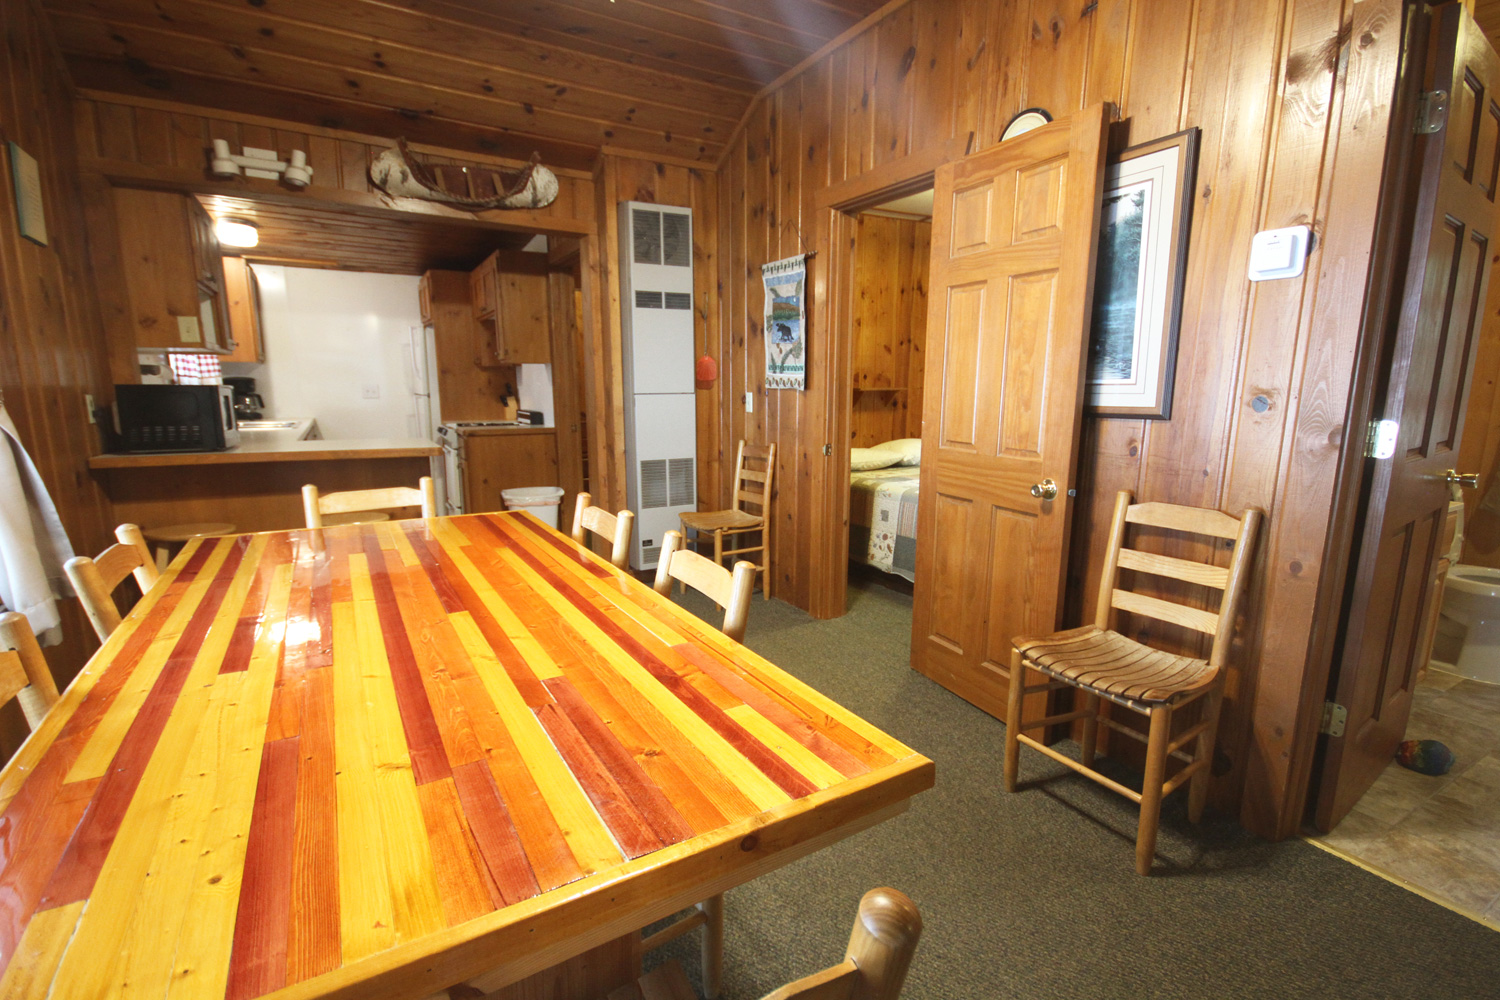 Dining & Gaming Table that seats 8